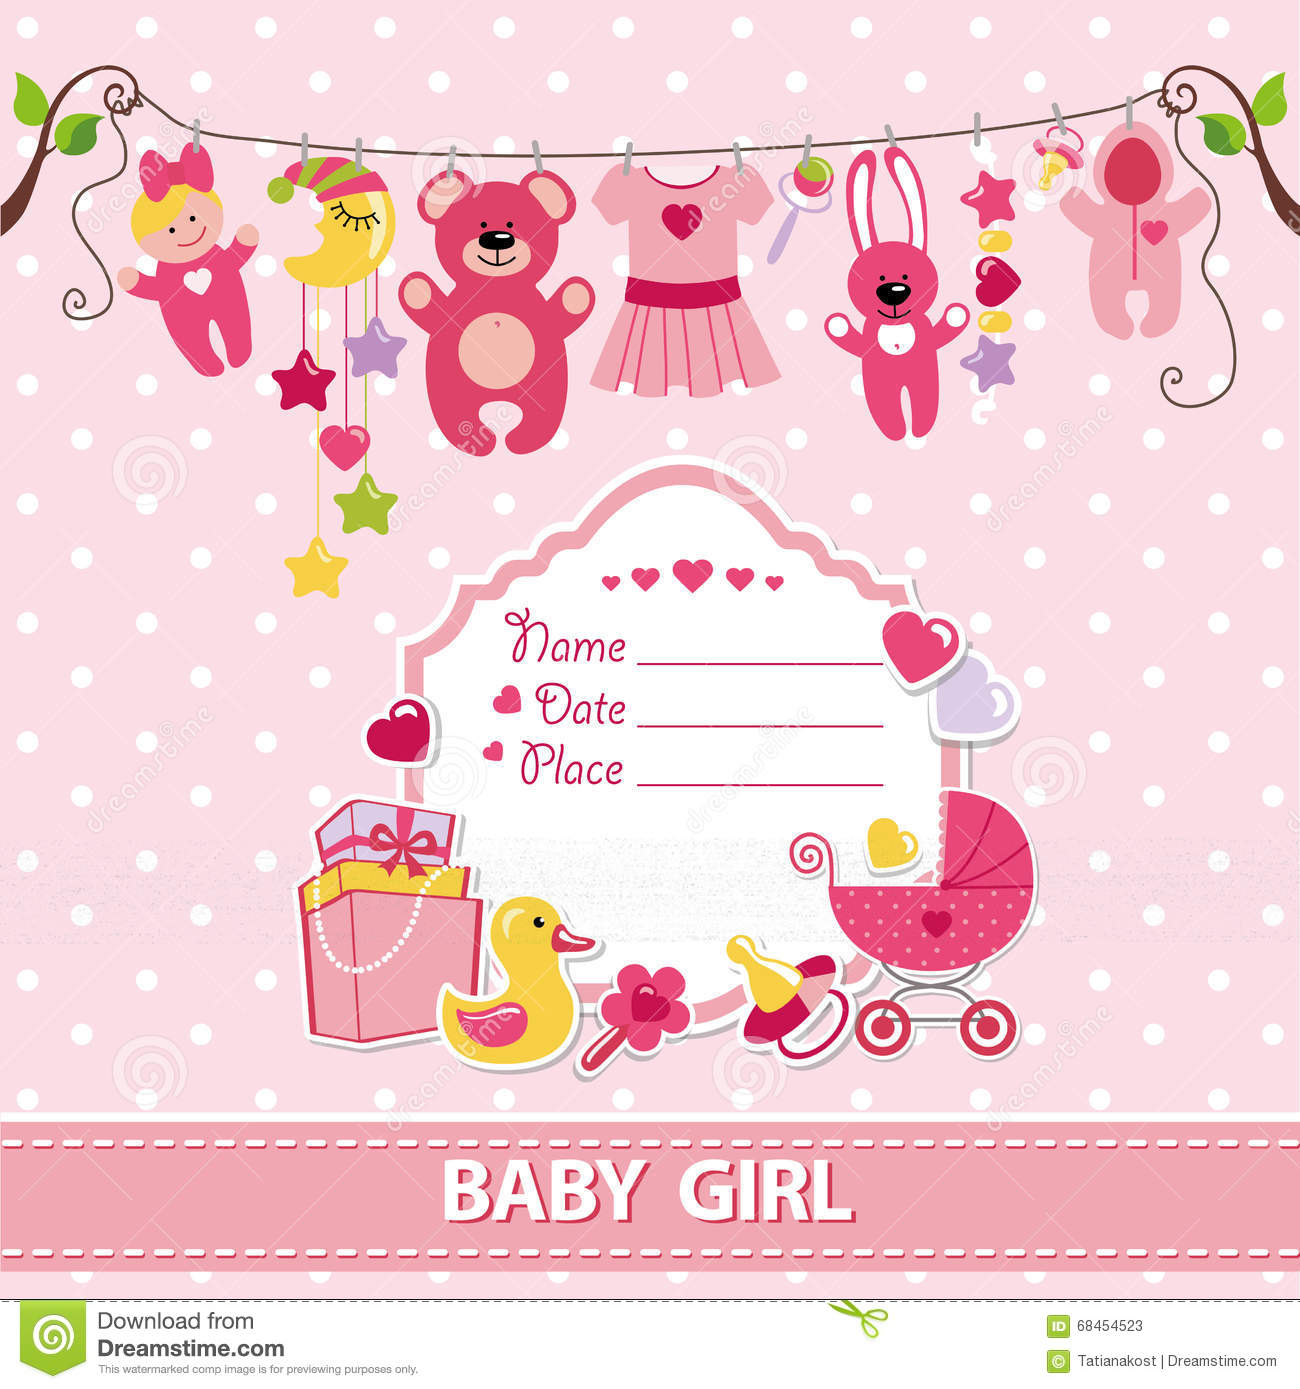 baby shower invitation template stock photography  image, Baby shower